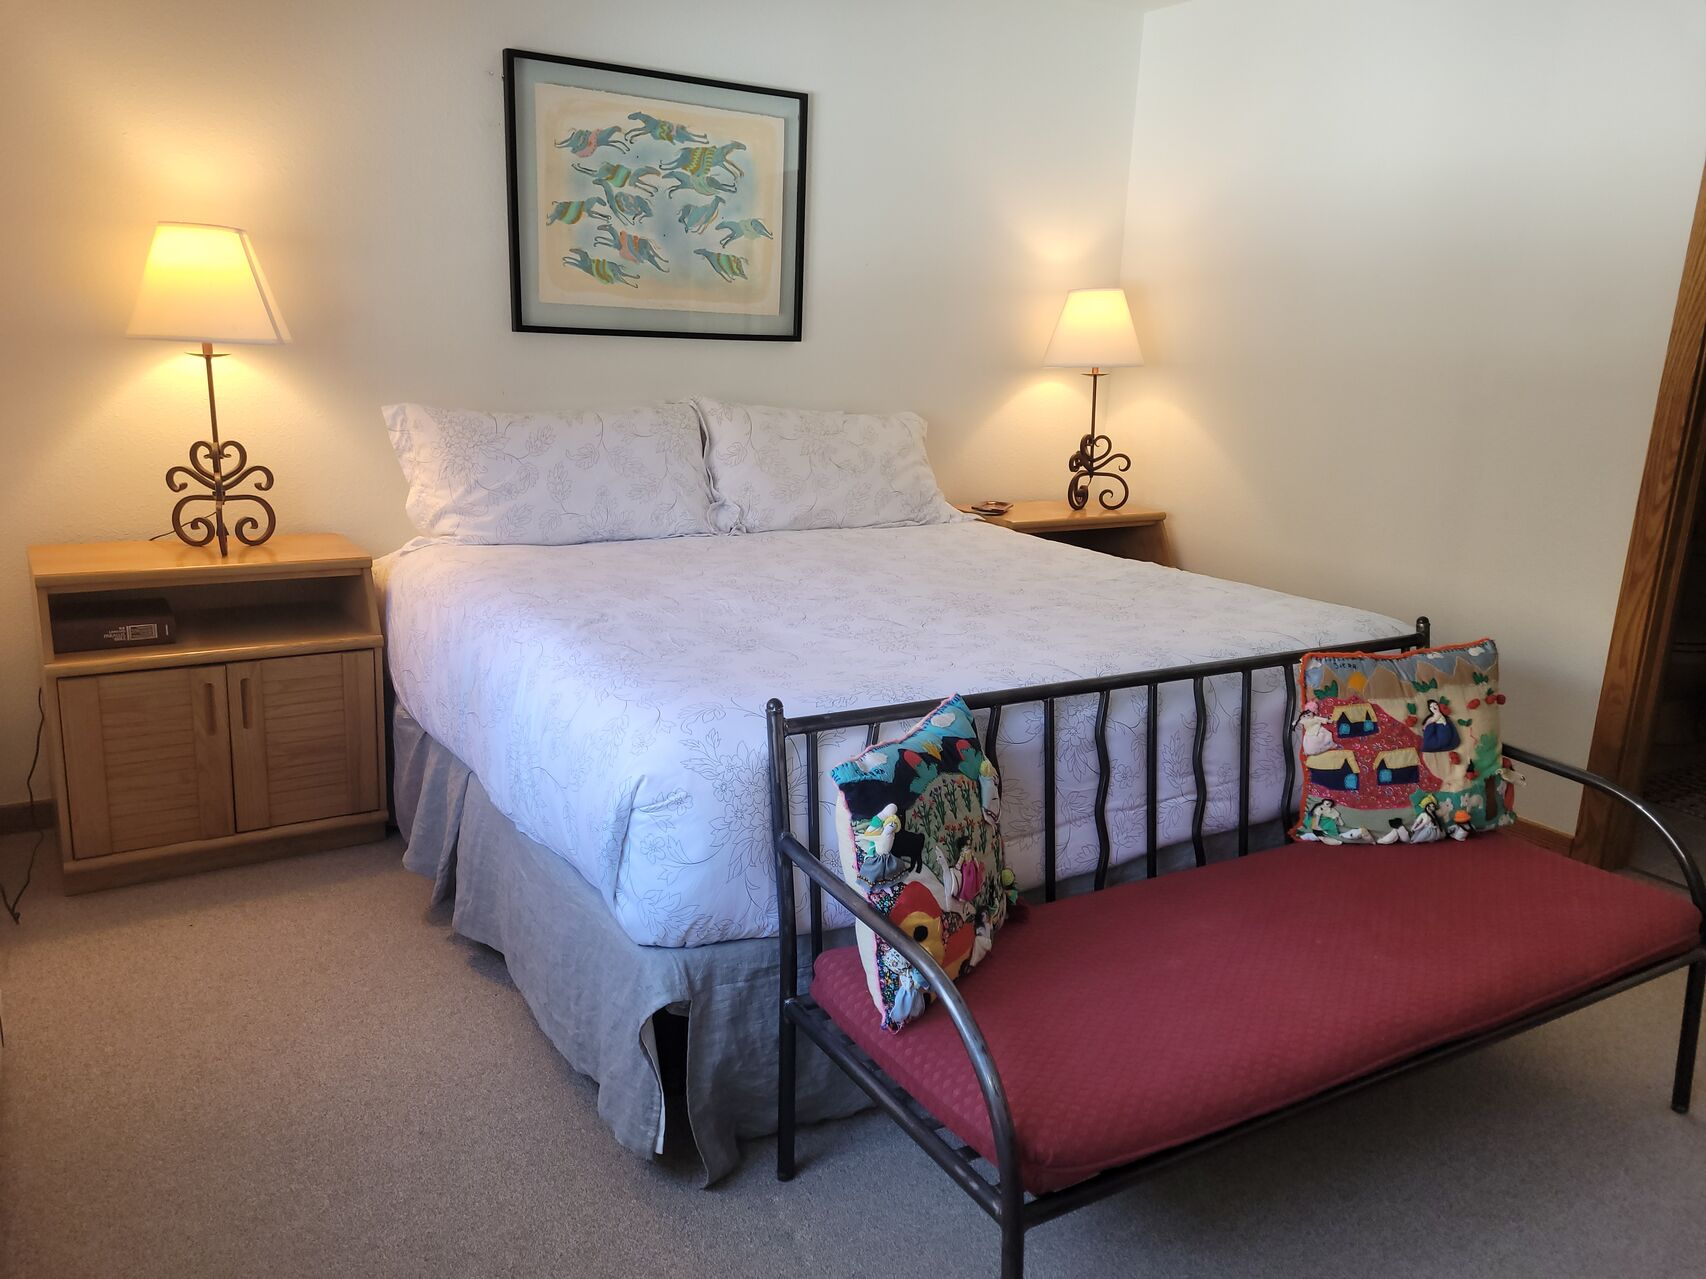 Bedroom with a double bed, a bench and nightstand